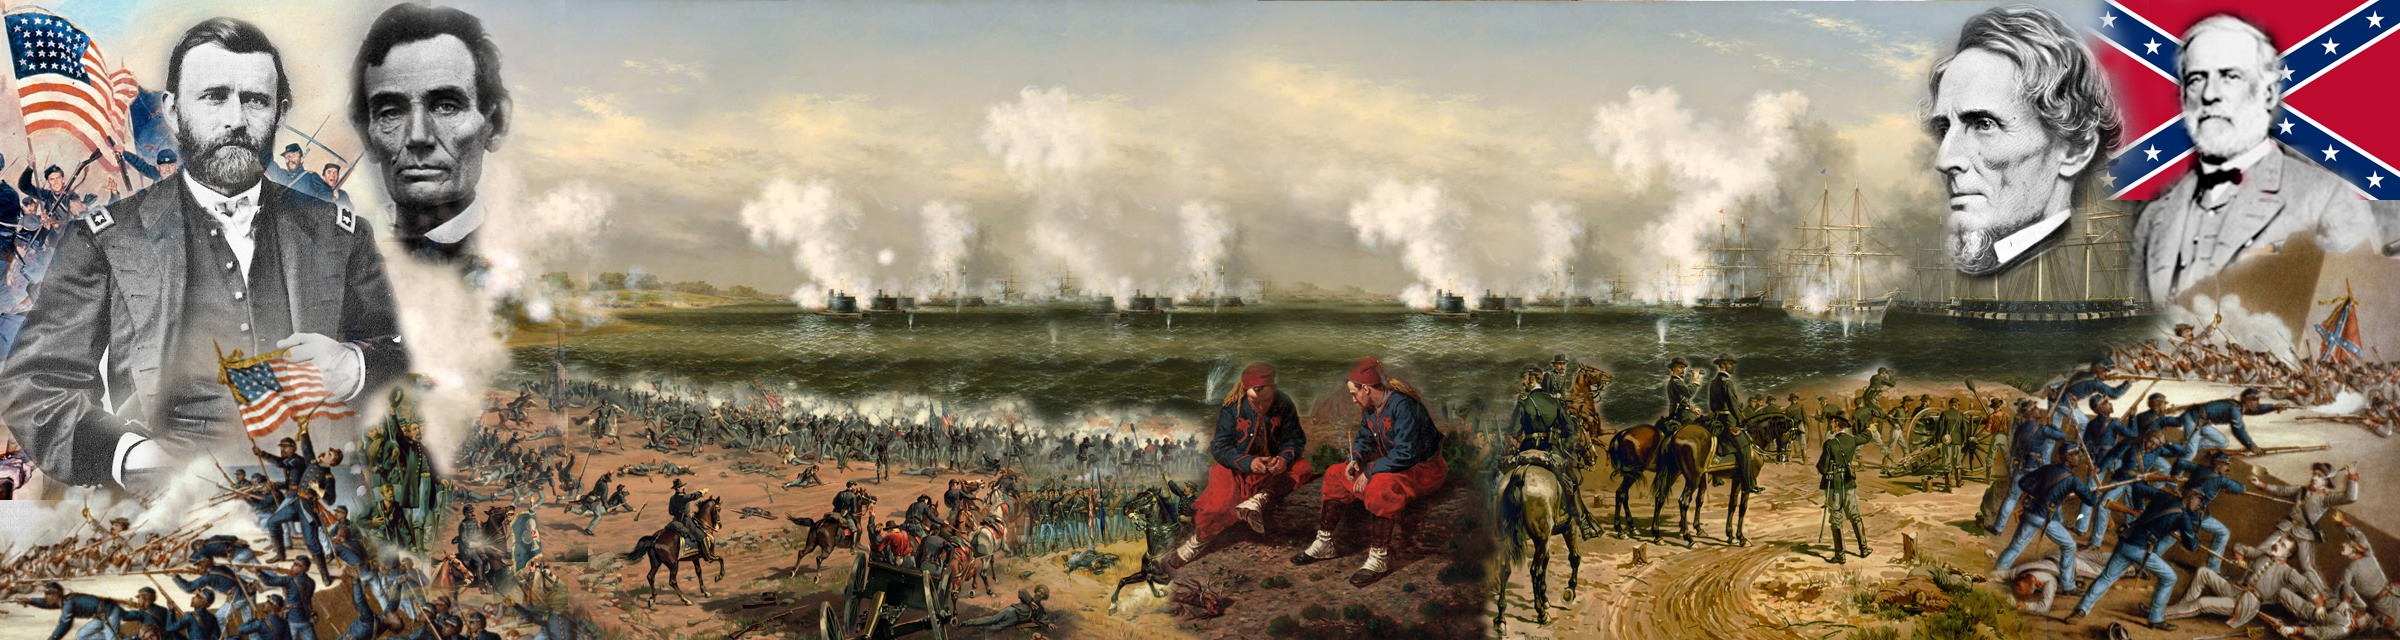 children fighting in the american civil American civil war cause and effect essay rubric the cause and effect of civil war history essay, become the top causes to the civil war of united state before the civil war, slavery was very common in american.